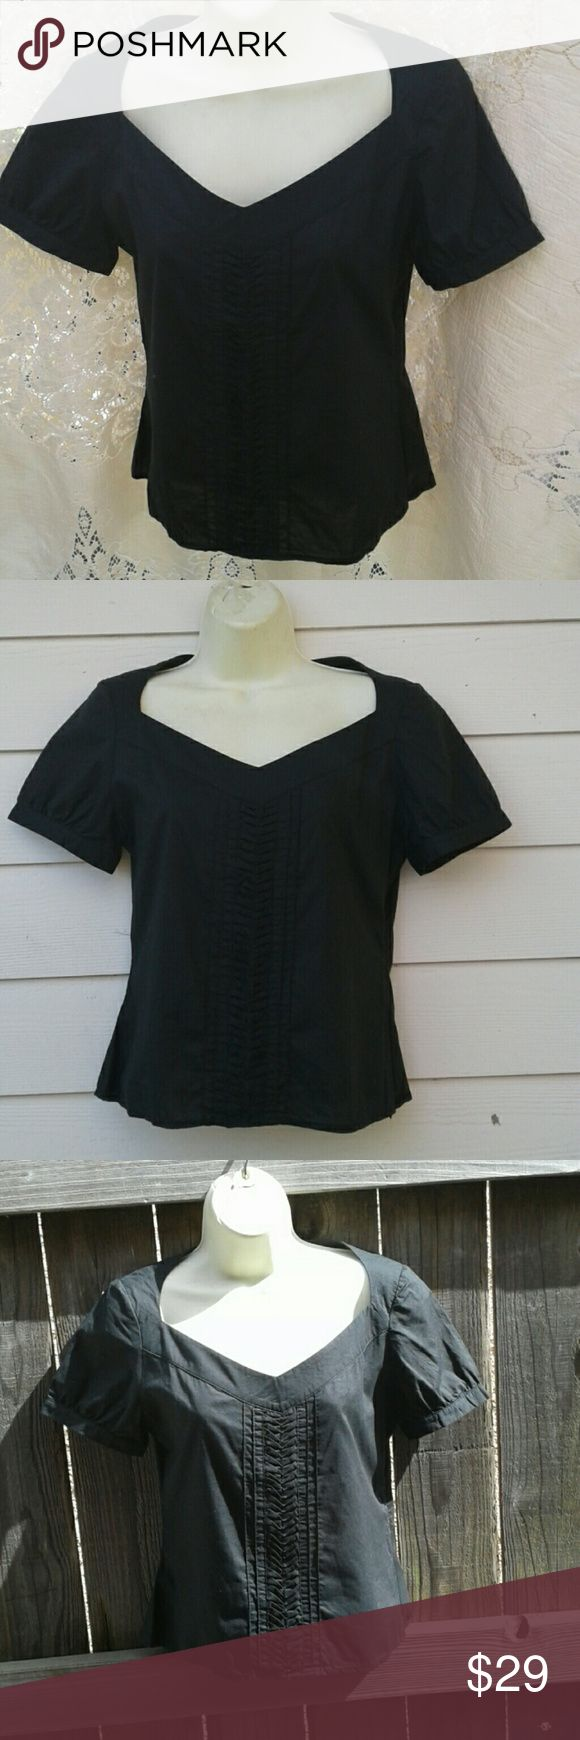 REISS BLACK 100% COTTON SHORT SLEEVE TOP3 FRONT PUCKING DETAILS. SIDE ZIP CLOSURE  GREAT PRE-LOVED CONDITION, NO SIGNS OF WEAR, RIPS. SMELLS OR IMPERFECTIONS REISS Tops Crop Tops